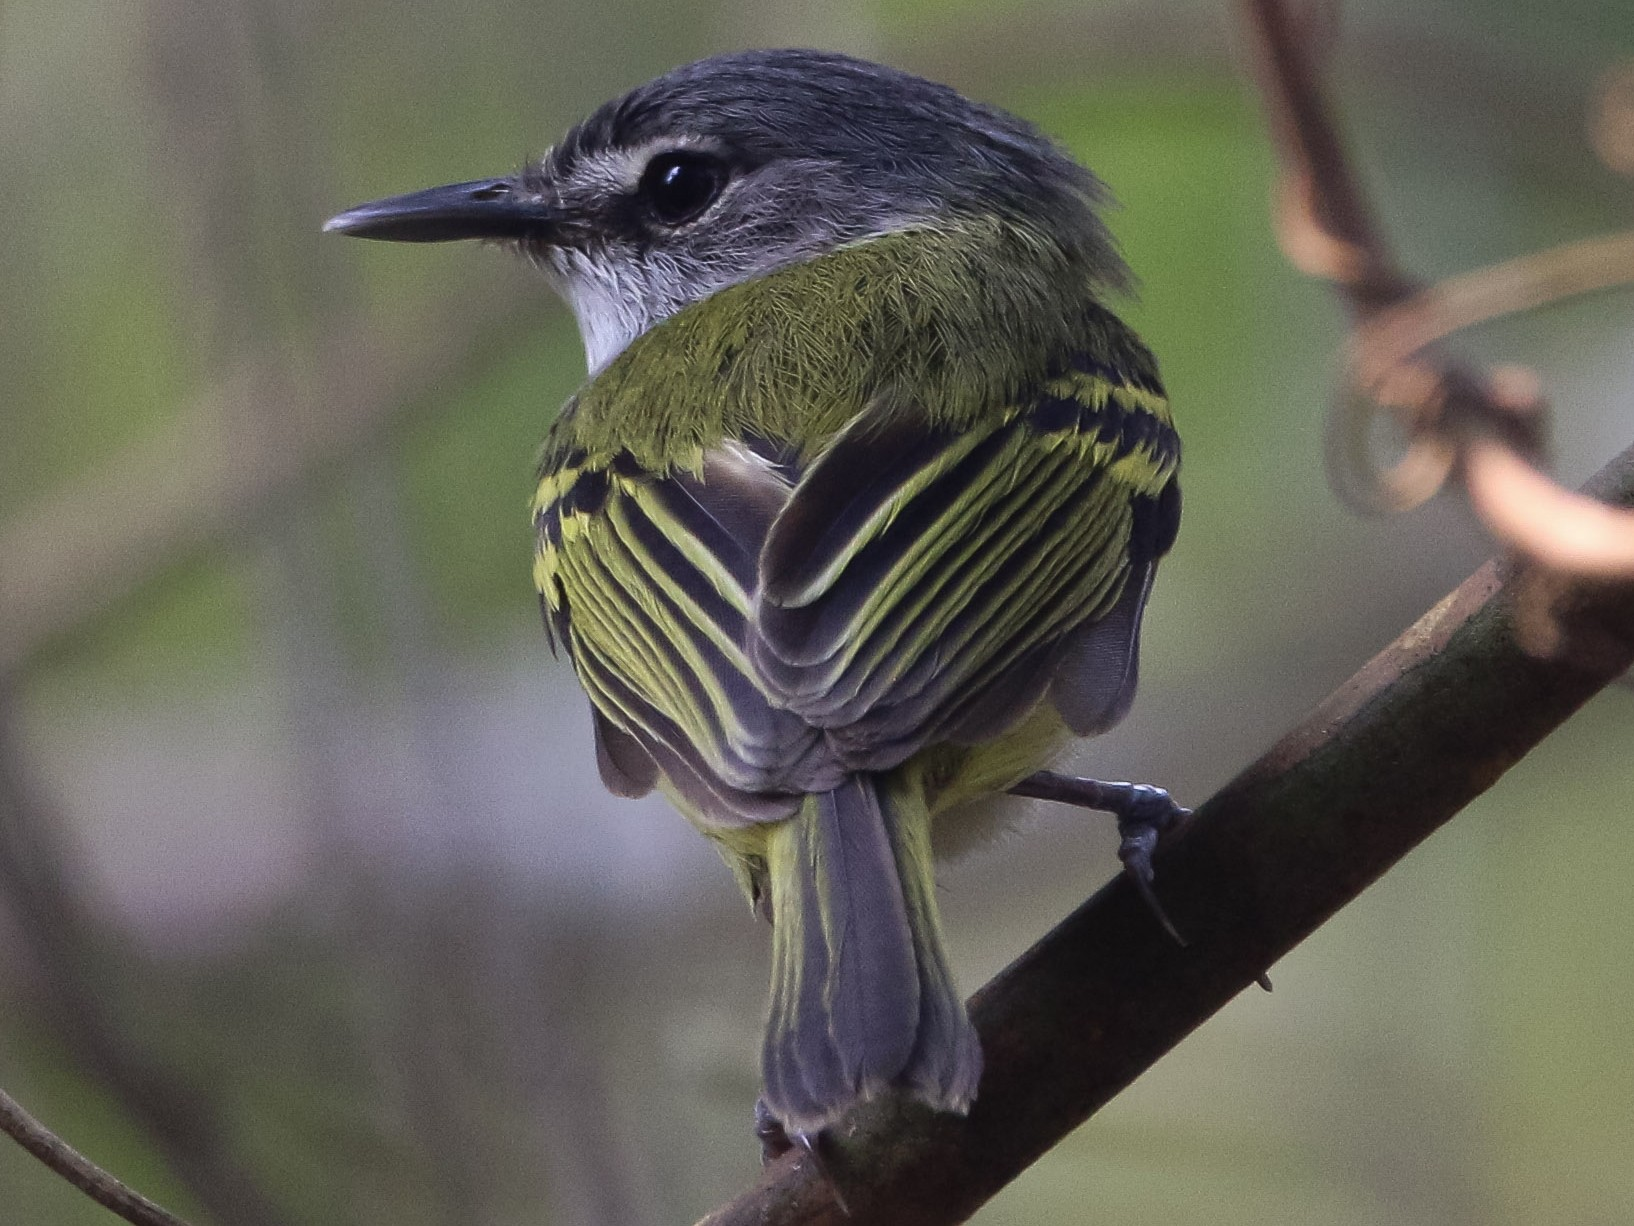 Slate-headed Tody-Flycatcher - Isaias morataya